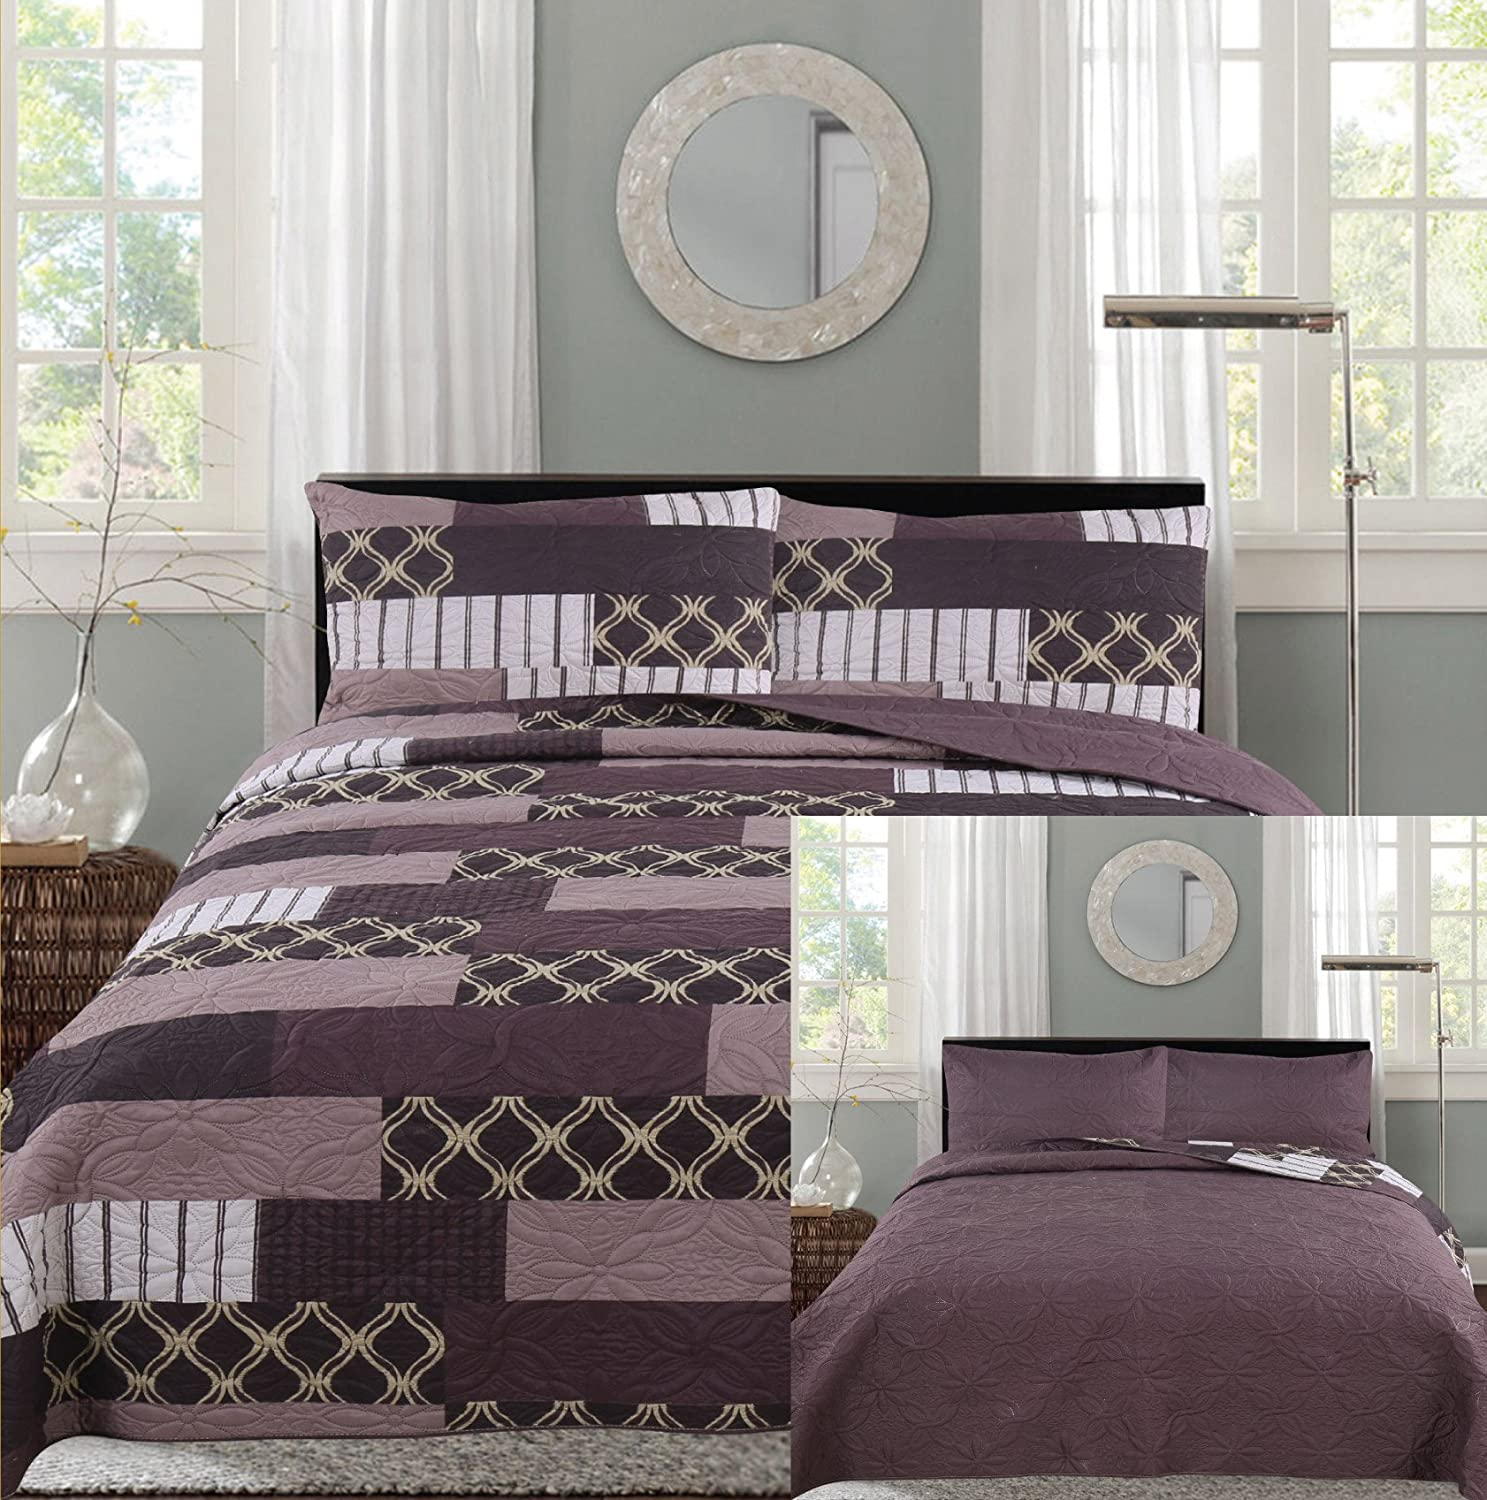 All American Collection New 3pc Printed Reversible Modern Floral Bedspread Coverlet Queen